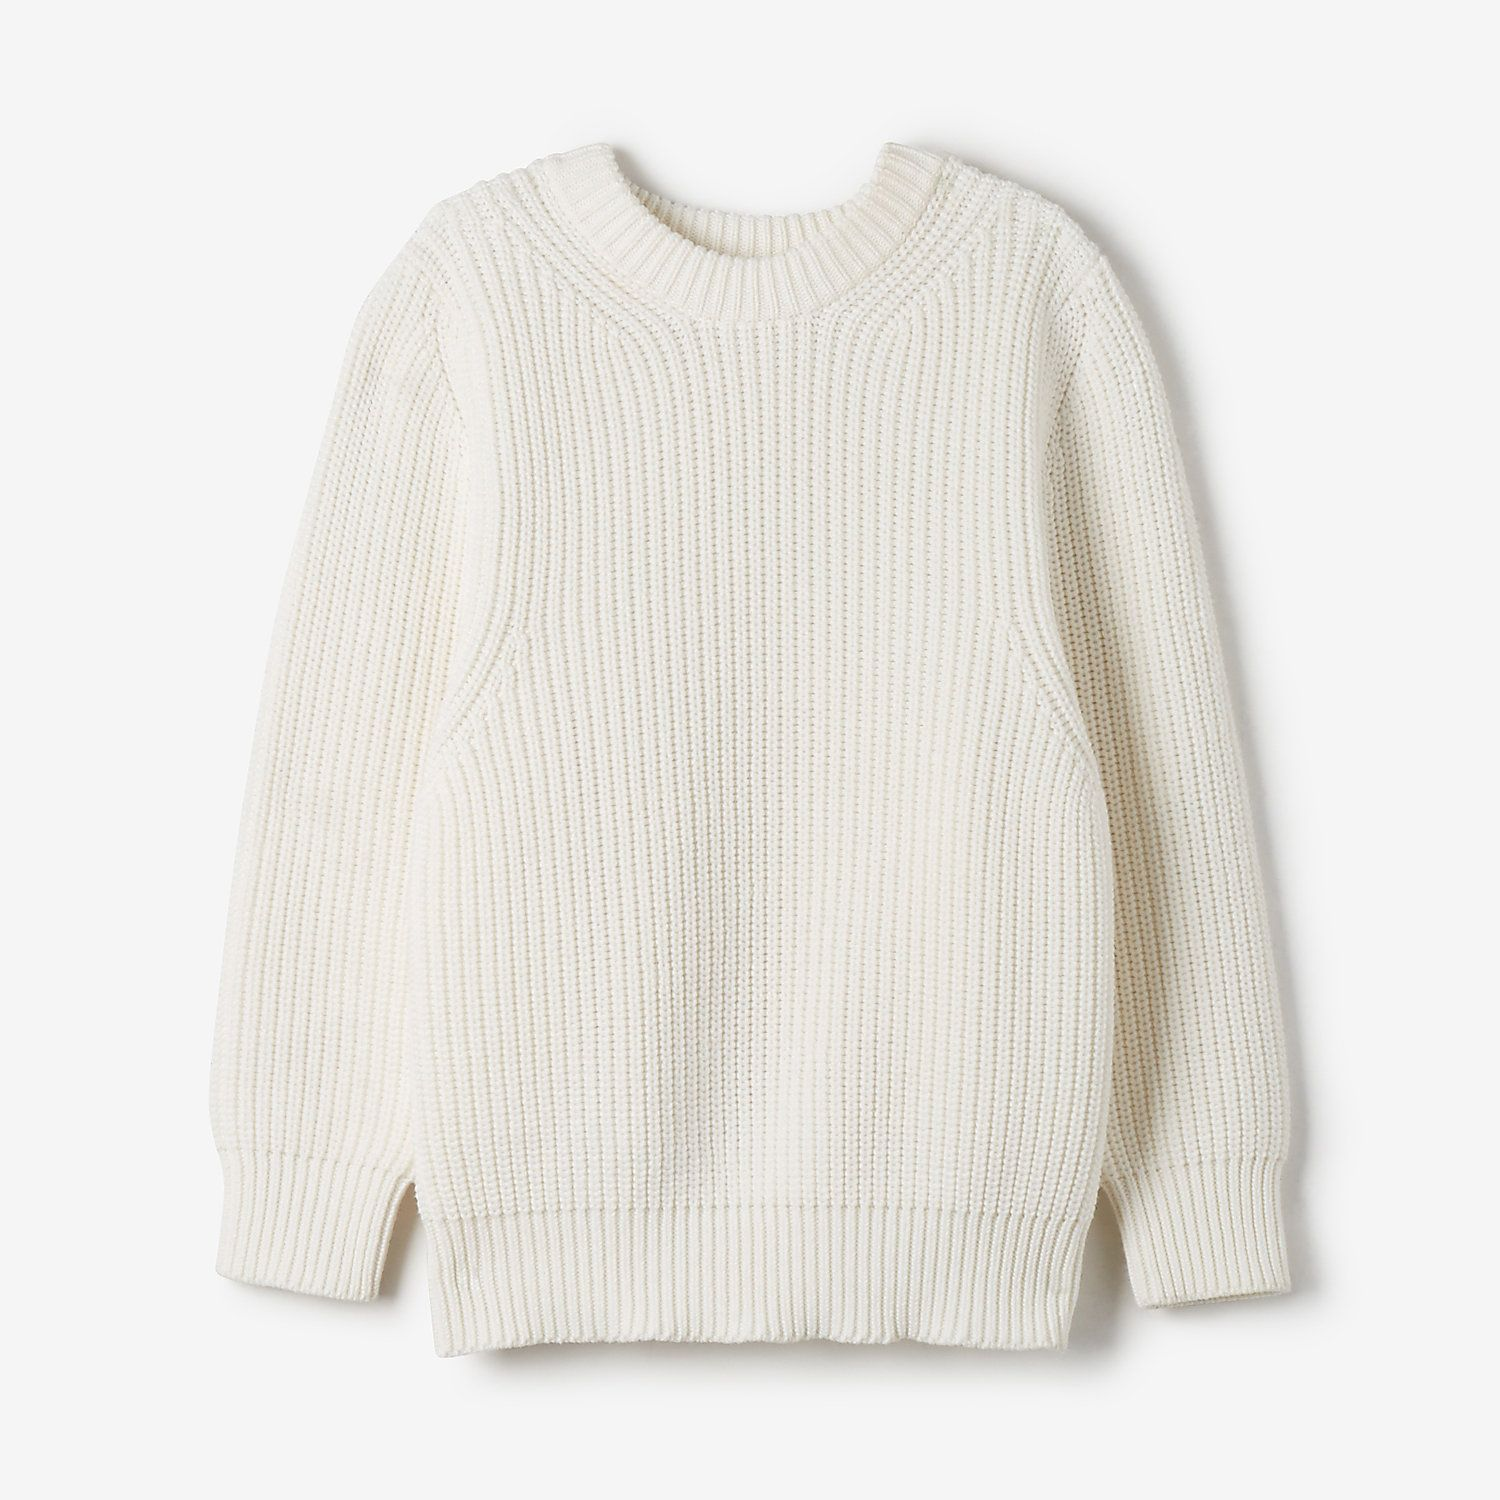 AUBREY SWEATER by Demy Lee. A boxy cotton sweater with elbow ...